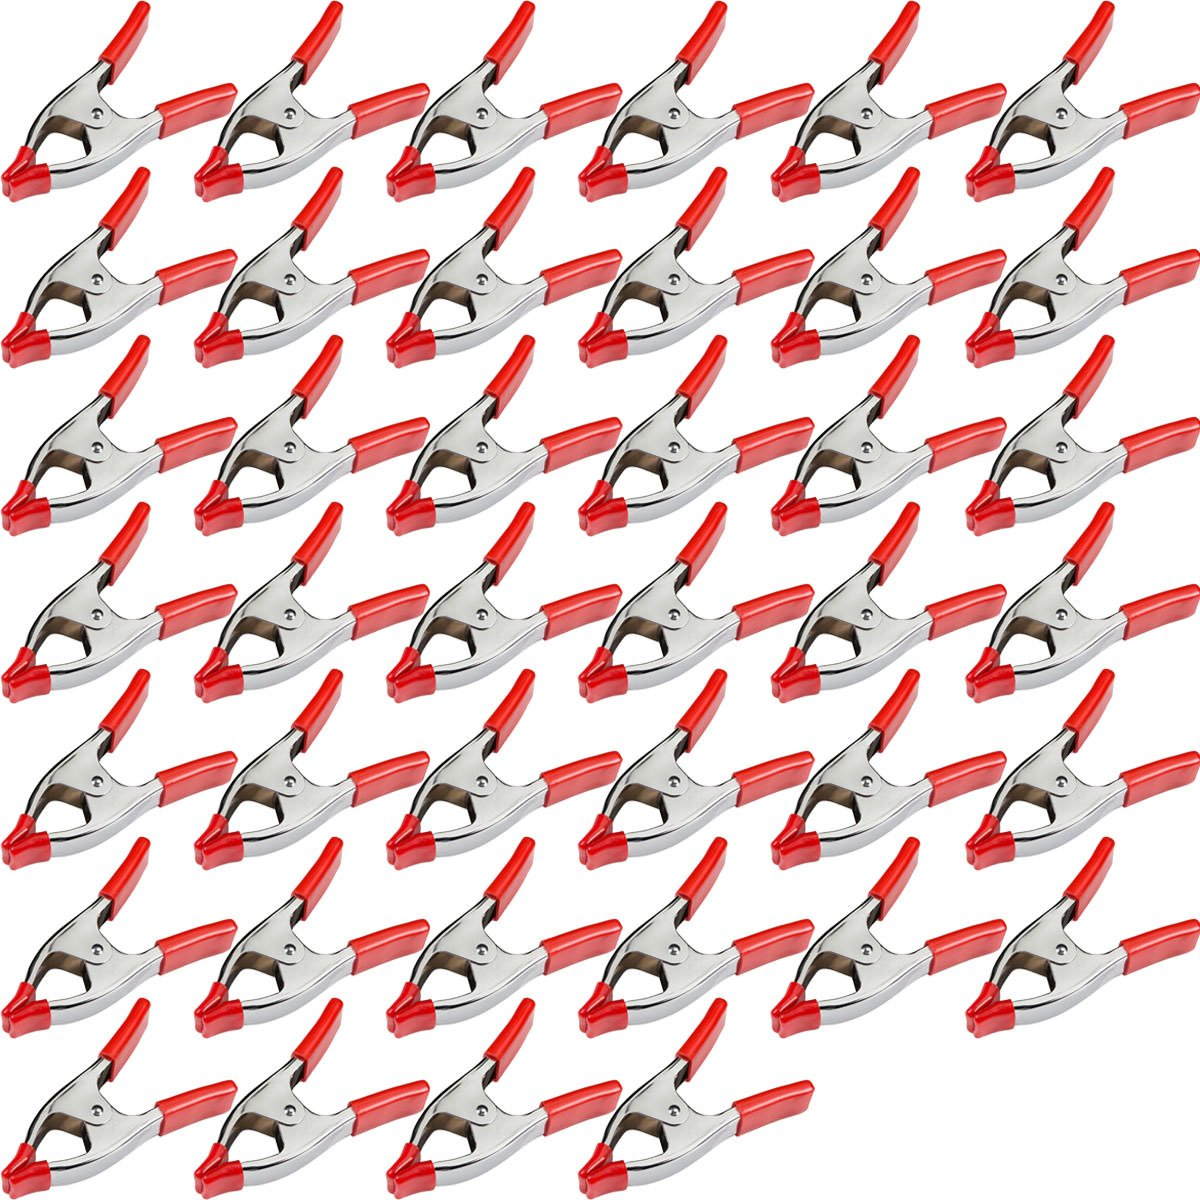 40 pcs. 2'' Inch Spring Metal Clamps wholesale Bulk - Red